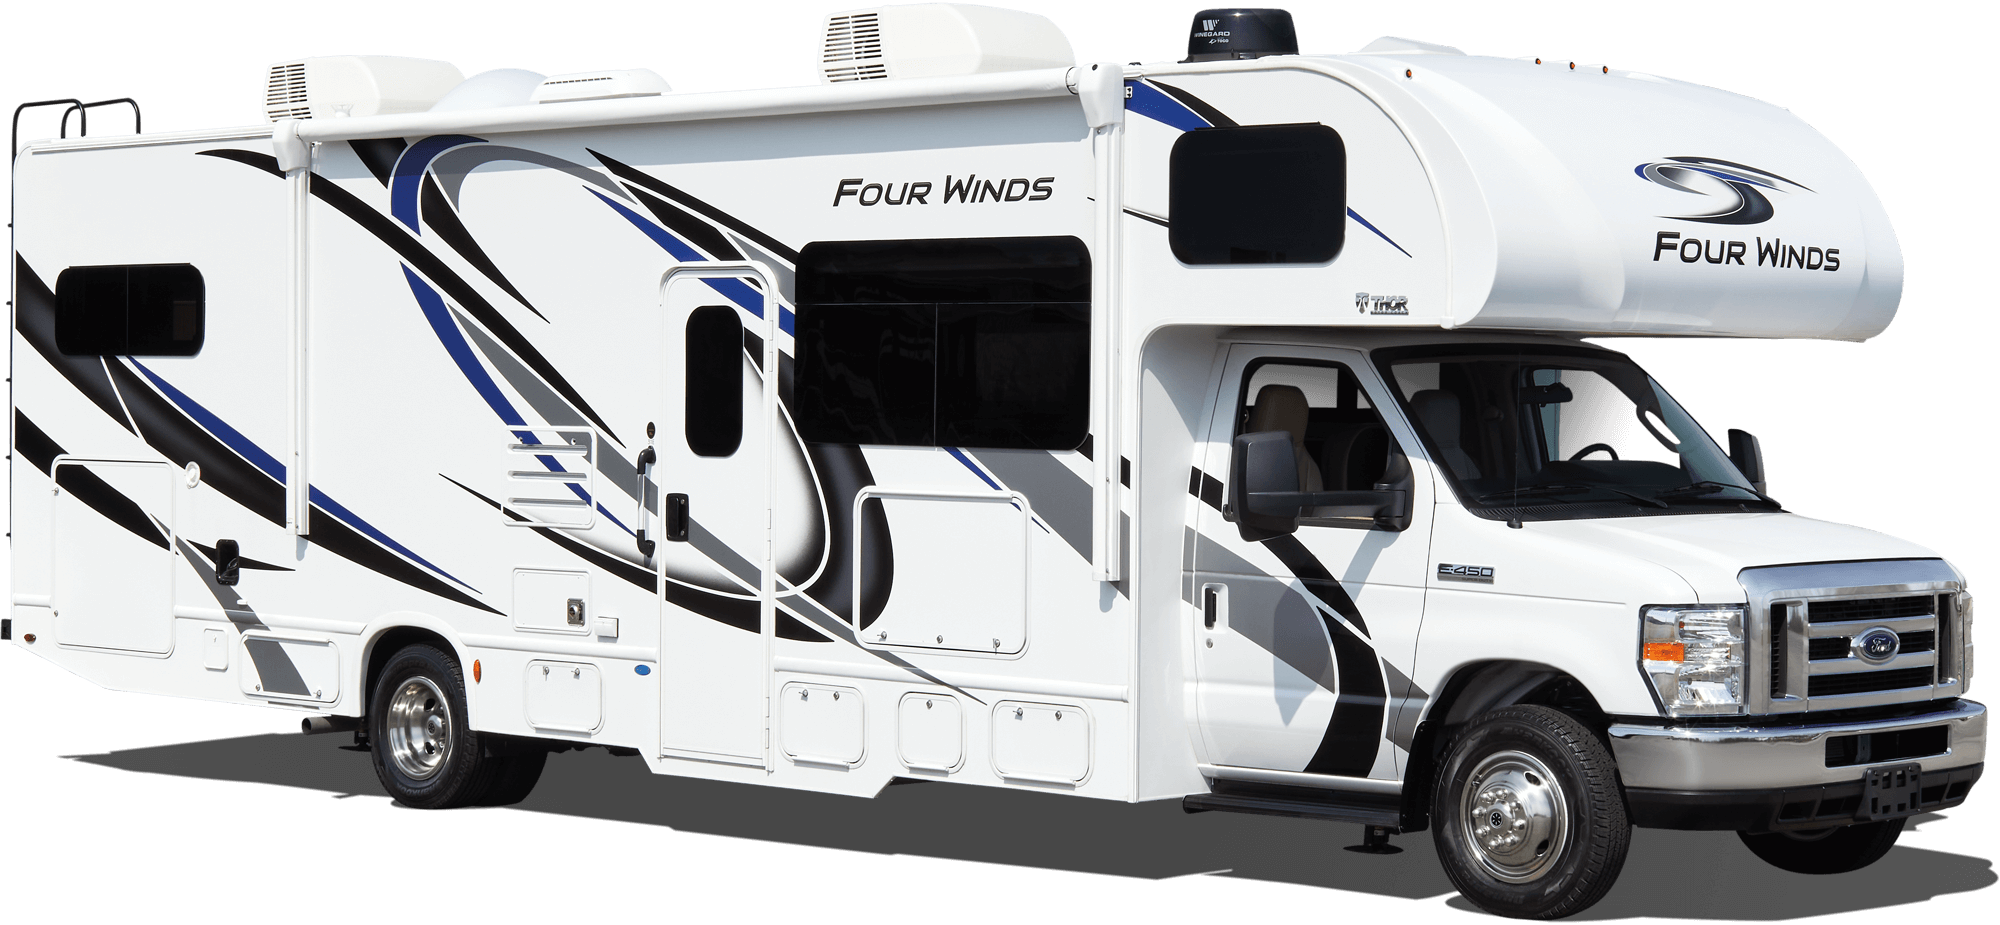 Four Winds Class C RV Exterior